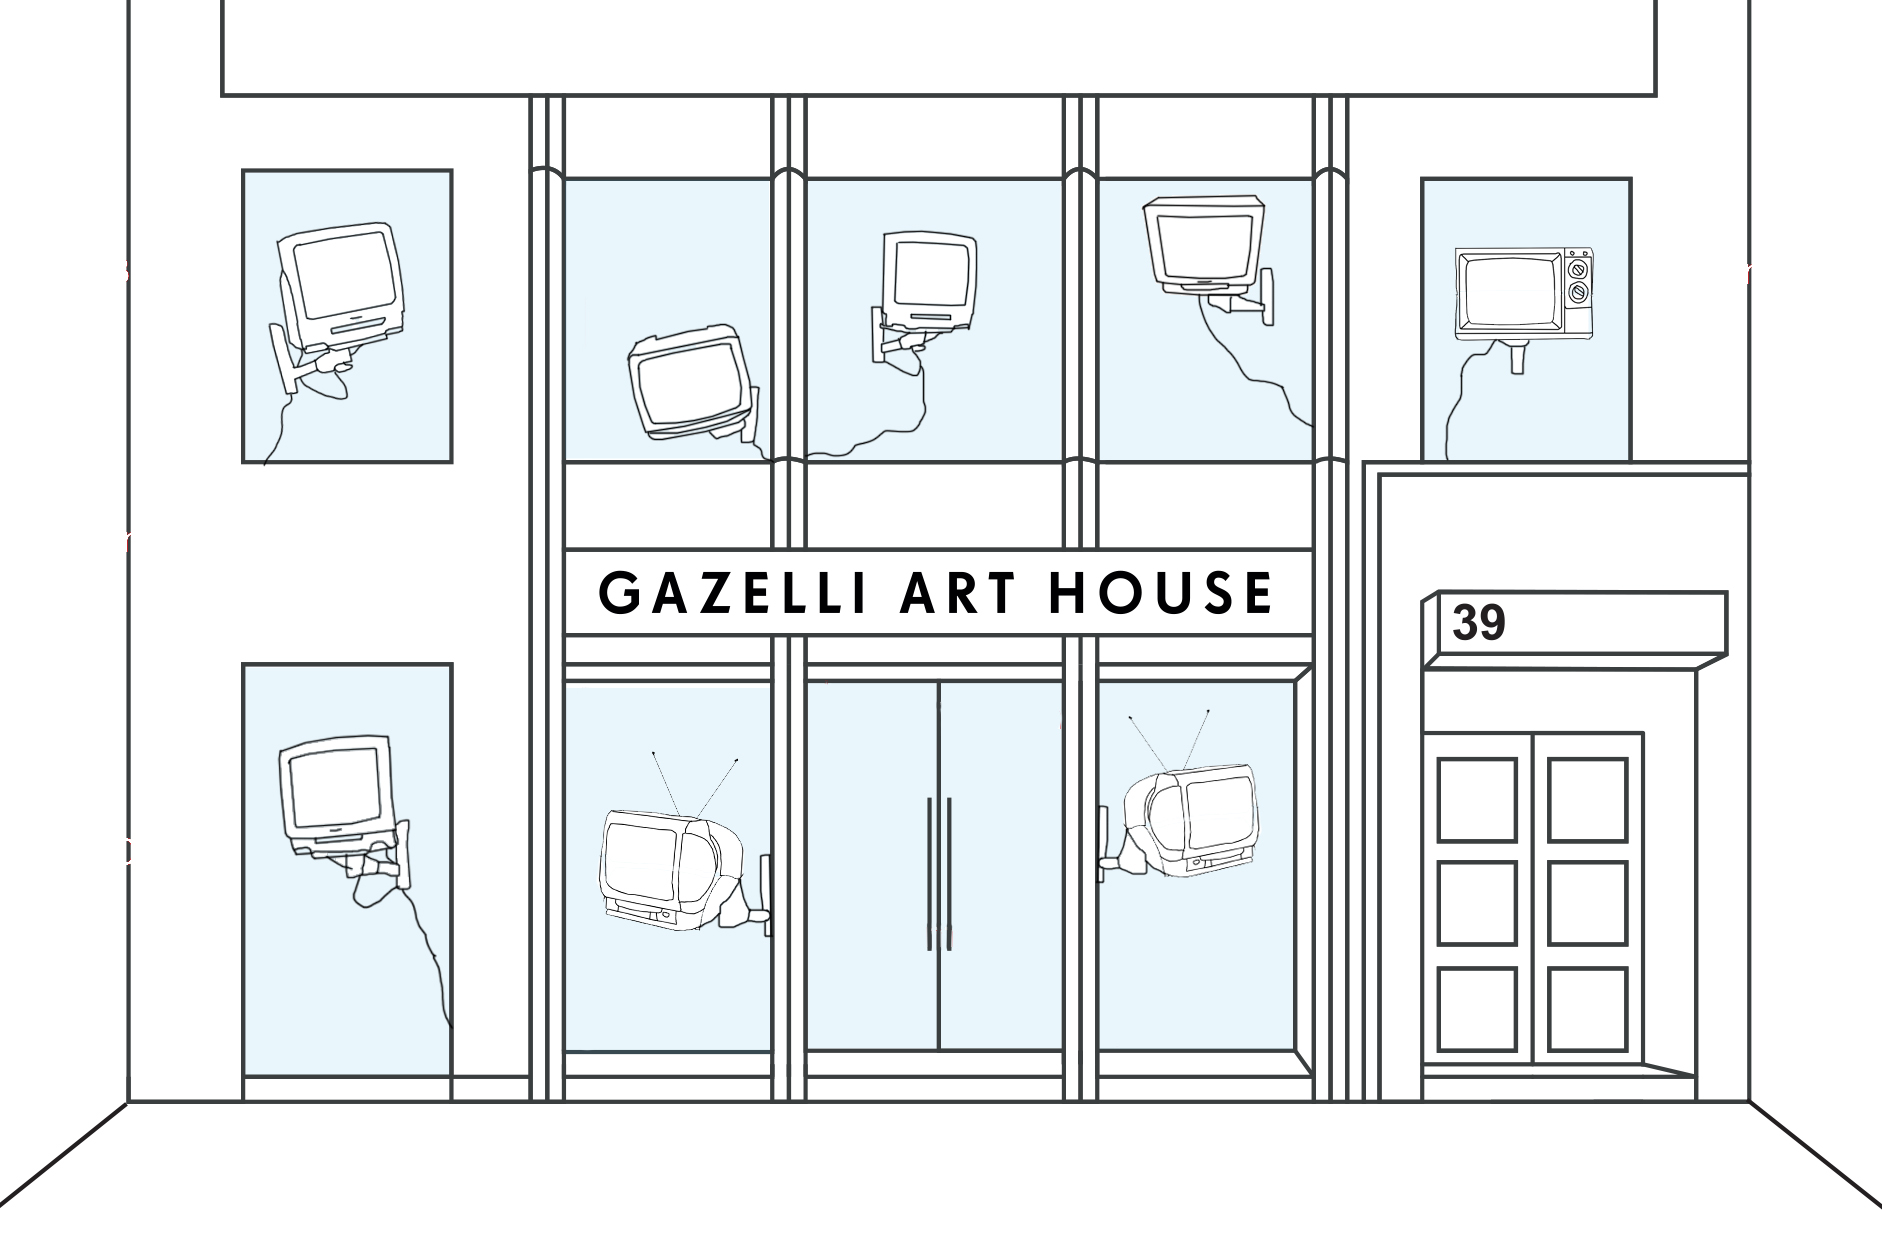 WSM - Gazelli Art House proposal